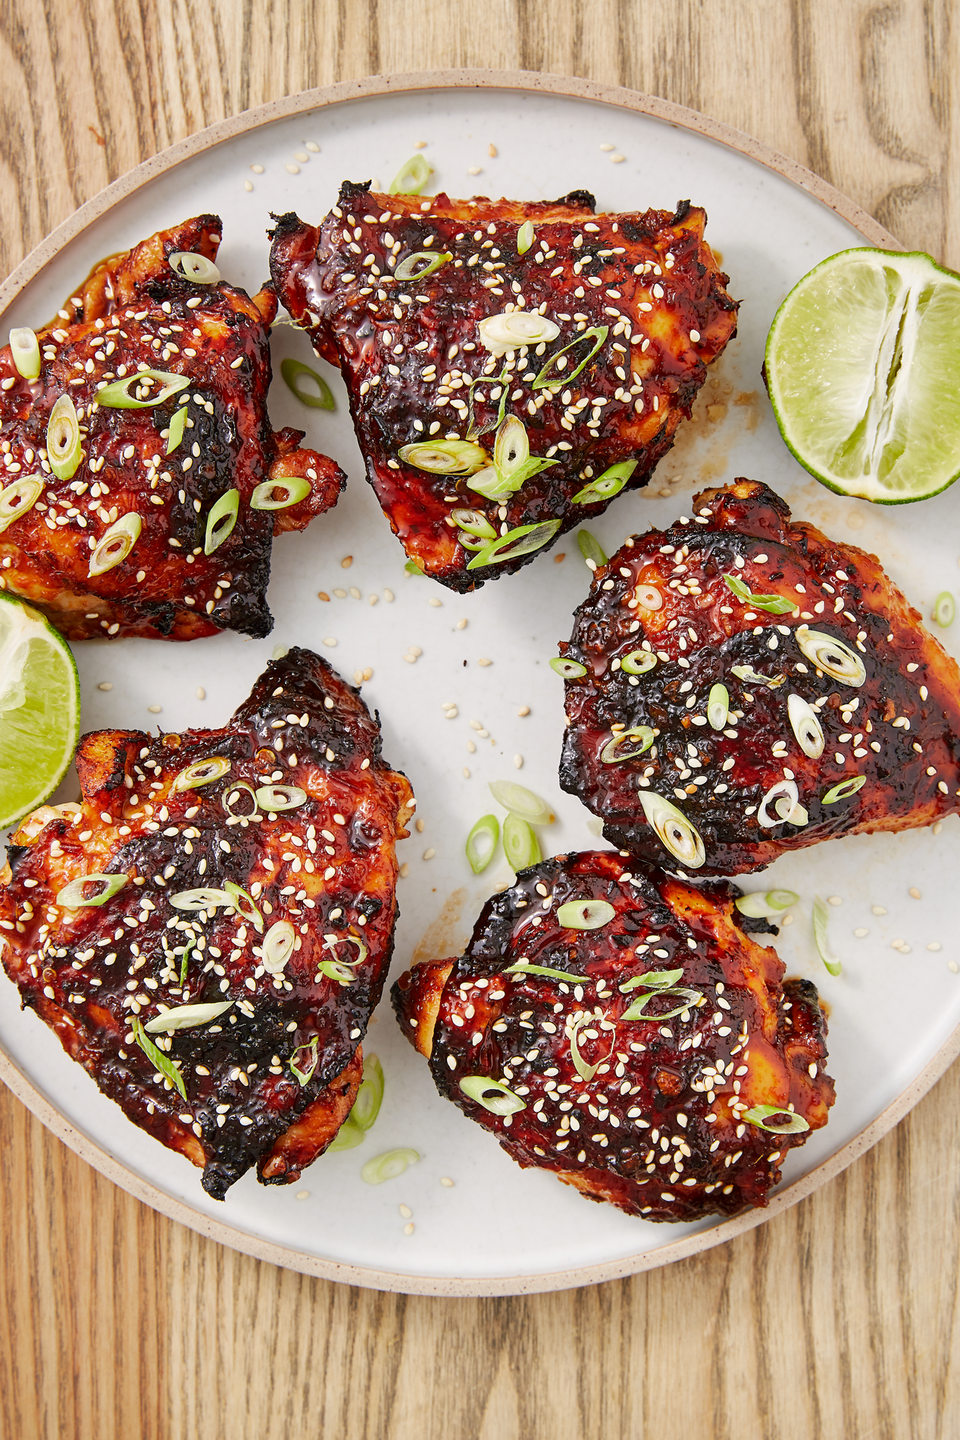 """<p>You'll lose your mind over the sticky glaze.</p><p>Get the recipe from <a href=""""https://www.delish.com/cooking/recipe-ideas/a28438728/air-fryer-chicken-thighs-recipe/"""" rel=""""nofollow noopener"""" target=""""_blank"""" data-ylk=""""slk:Delish"""" class=""""link rapid-noclick-resp"""">Delish</a>.</p>"""